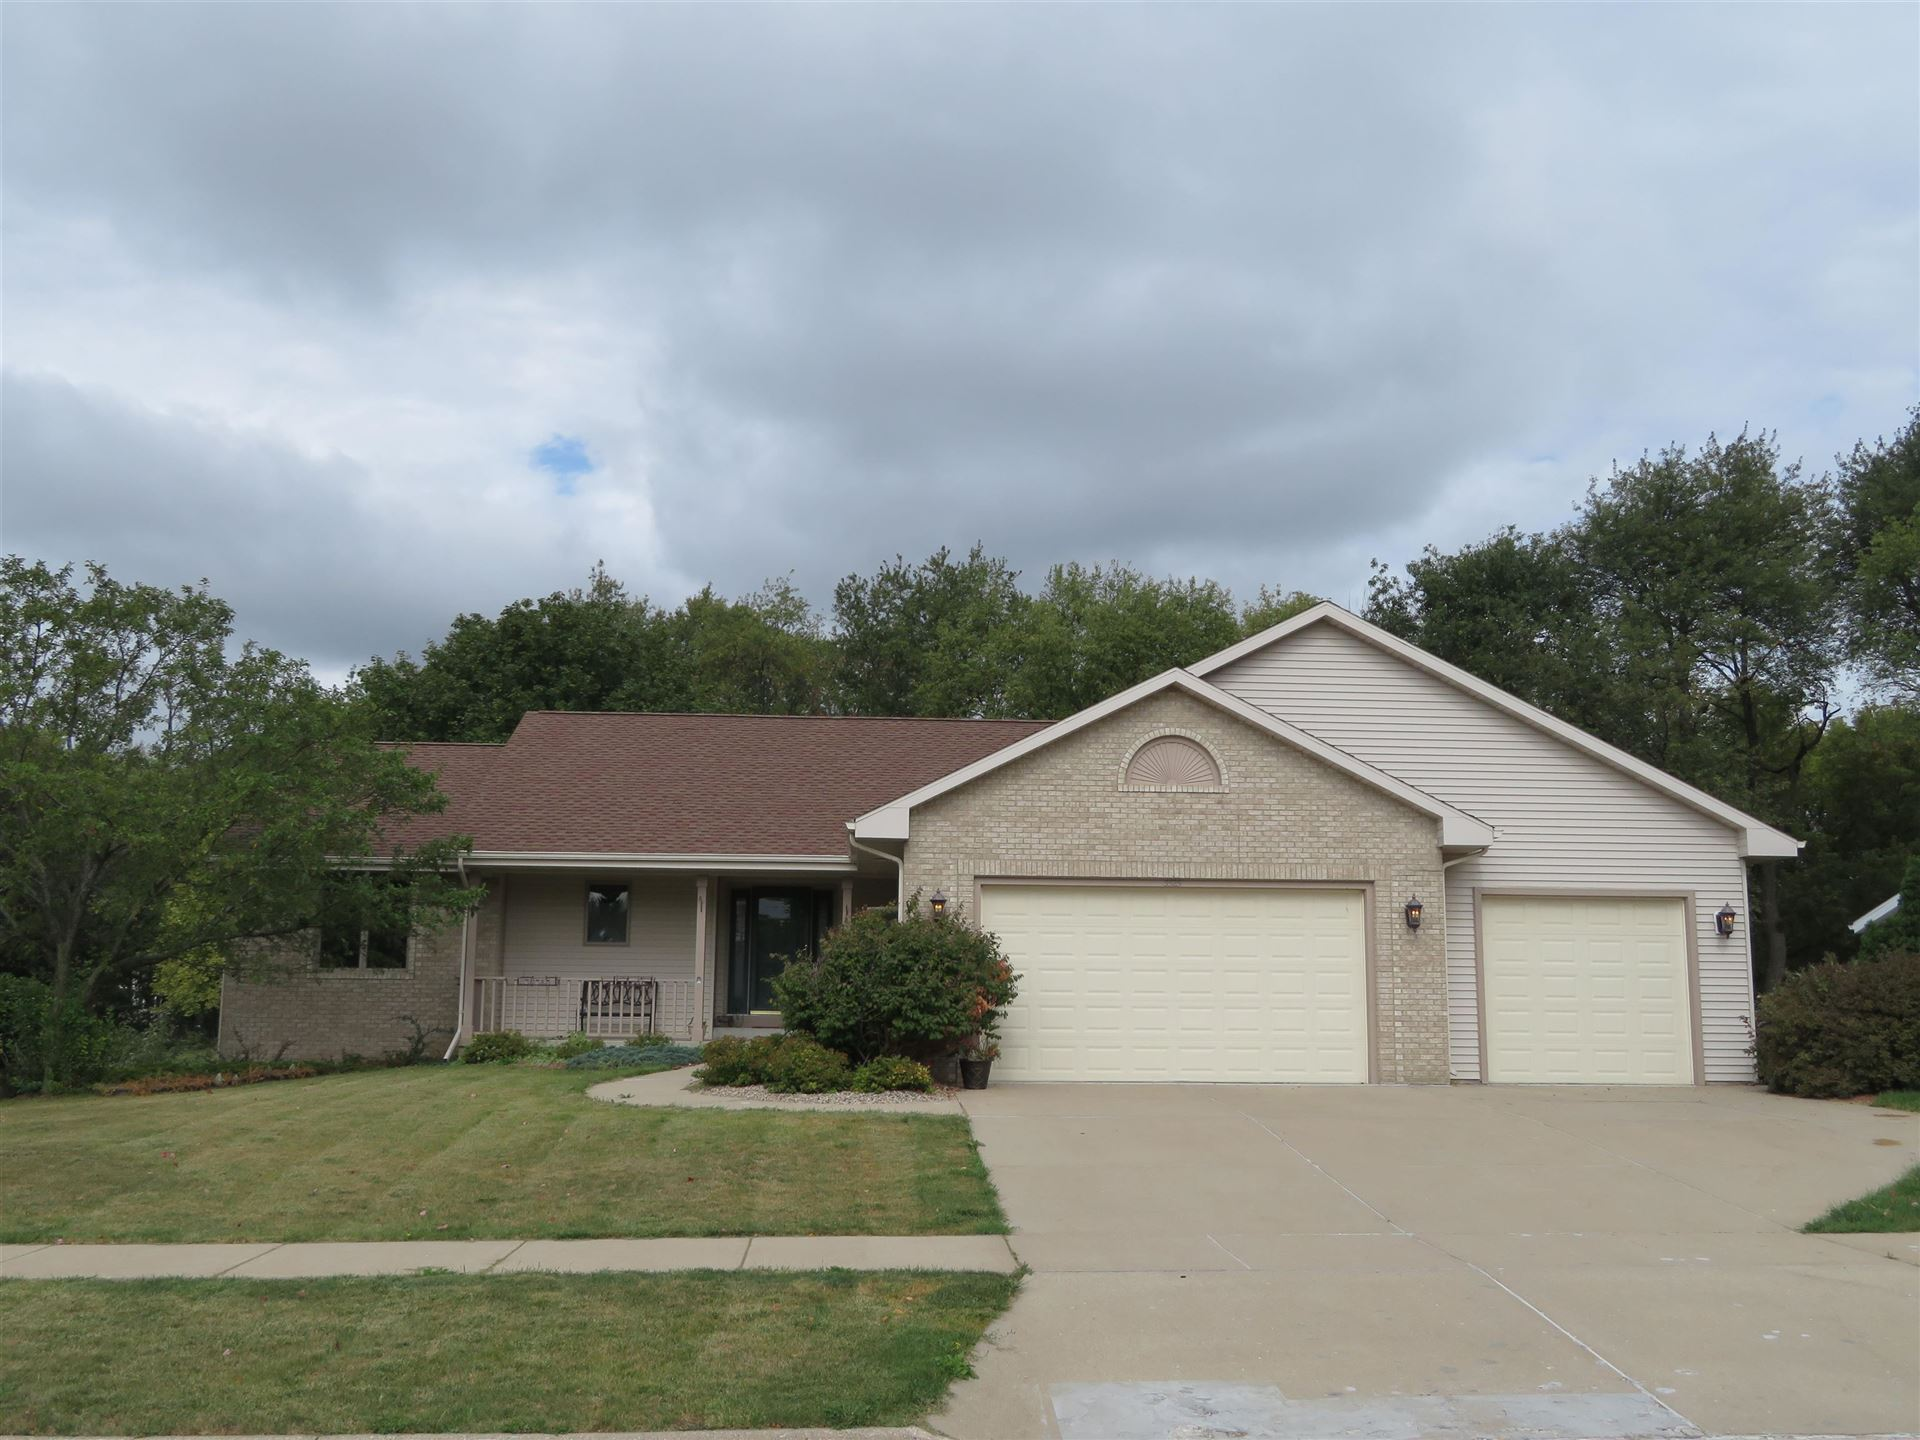 3525 Coventry Dr, Janesville, WI 53546 - #: 1920497